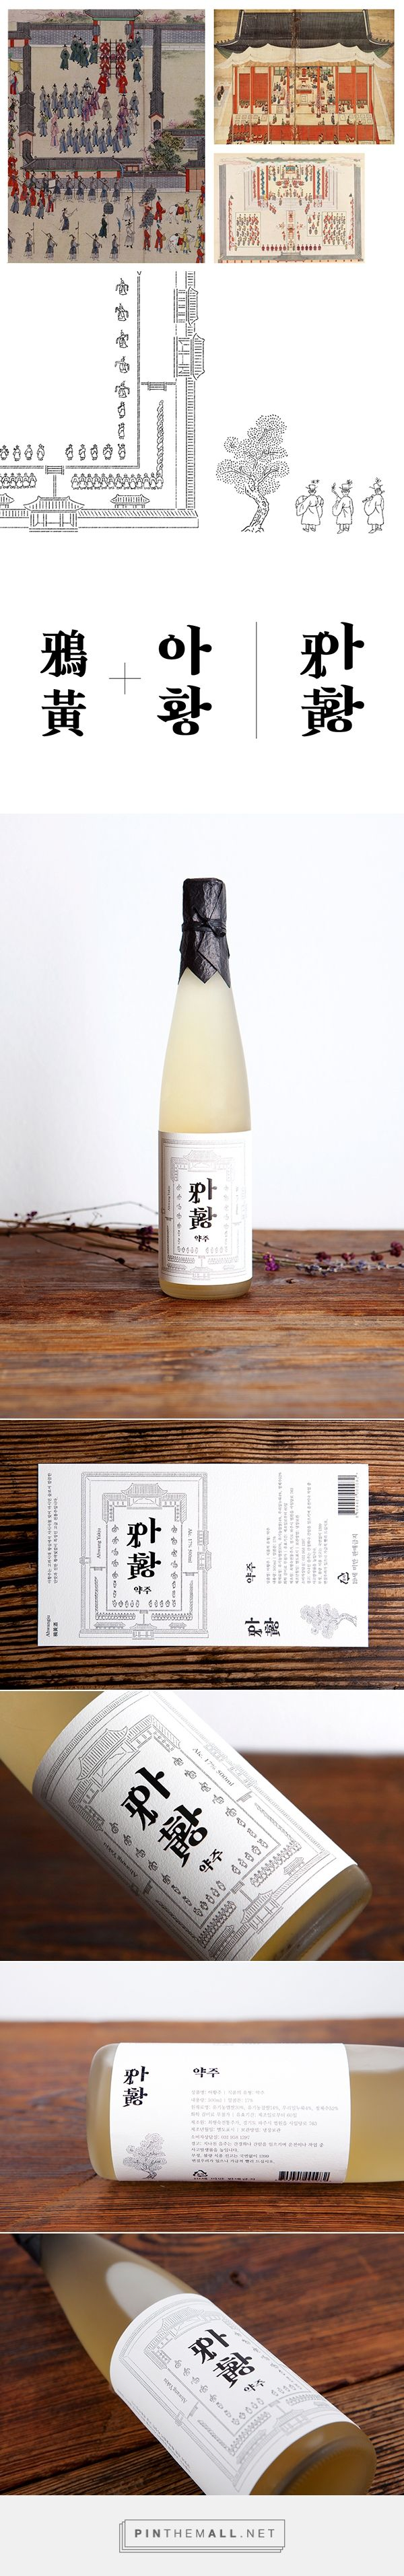 """South Korean rice wine packaging - Ahwang-ju - """"Ahwang-ju is Korean traditional clear rice wine based on the original recipe from the Korea, 1000 ye... - a grouped images picture - Pin Them All"""